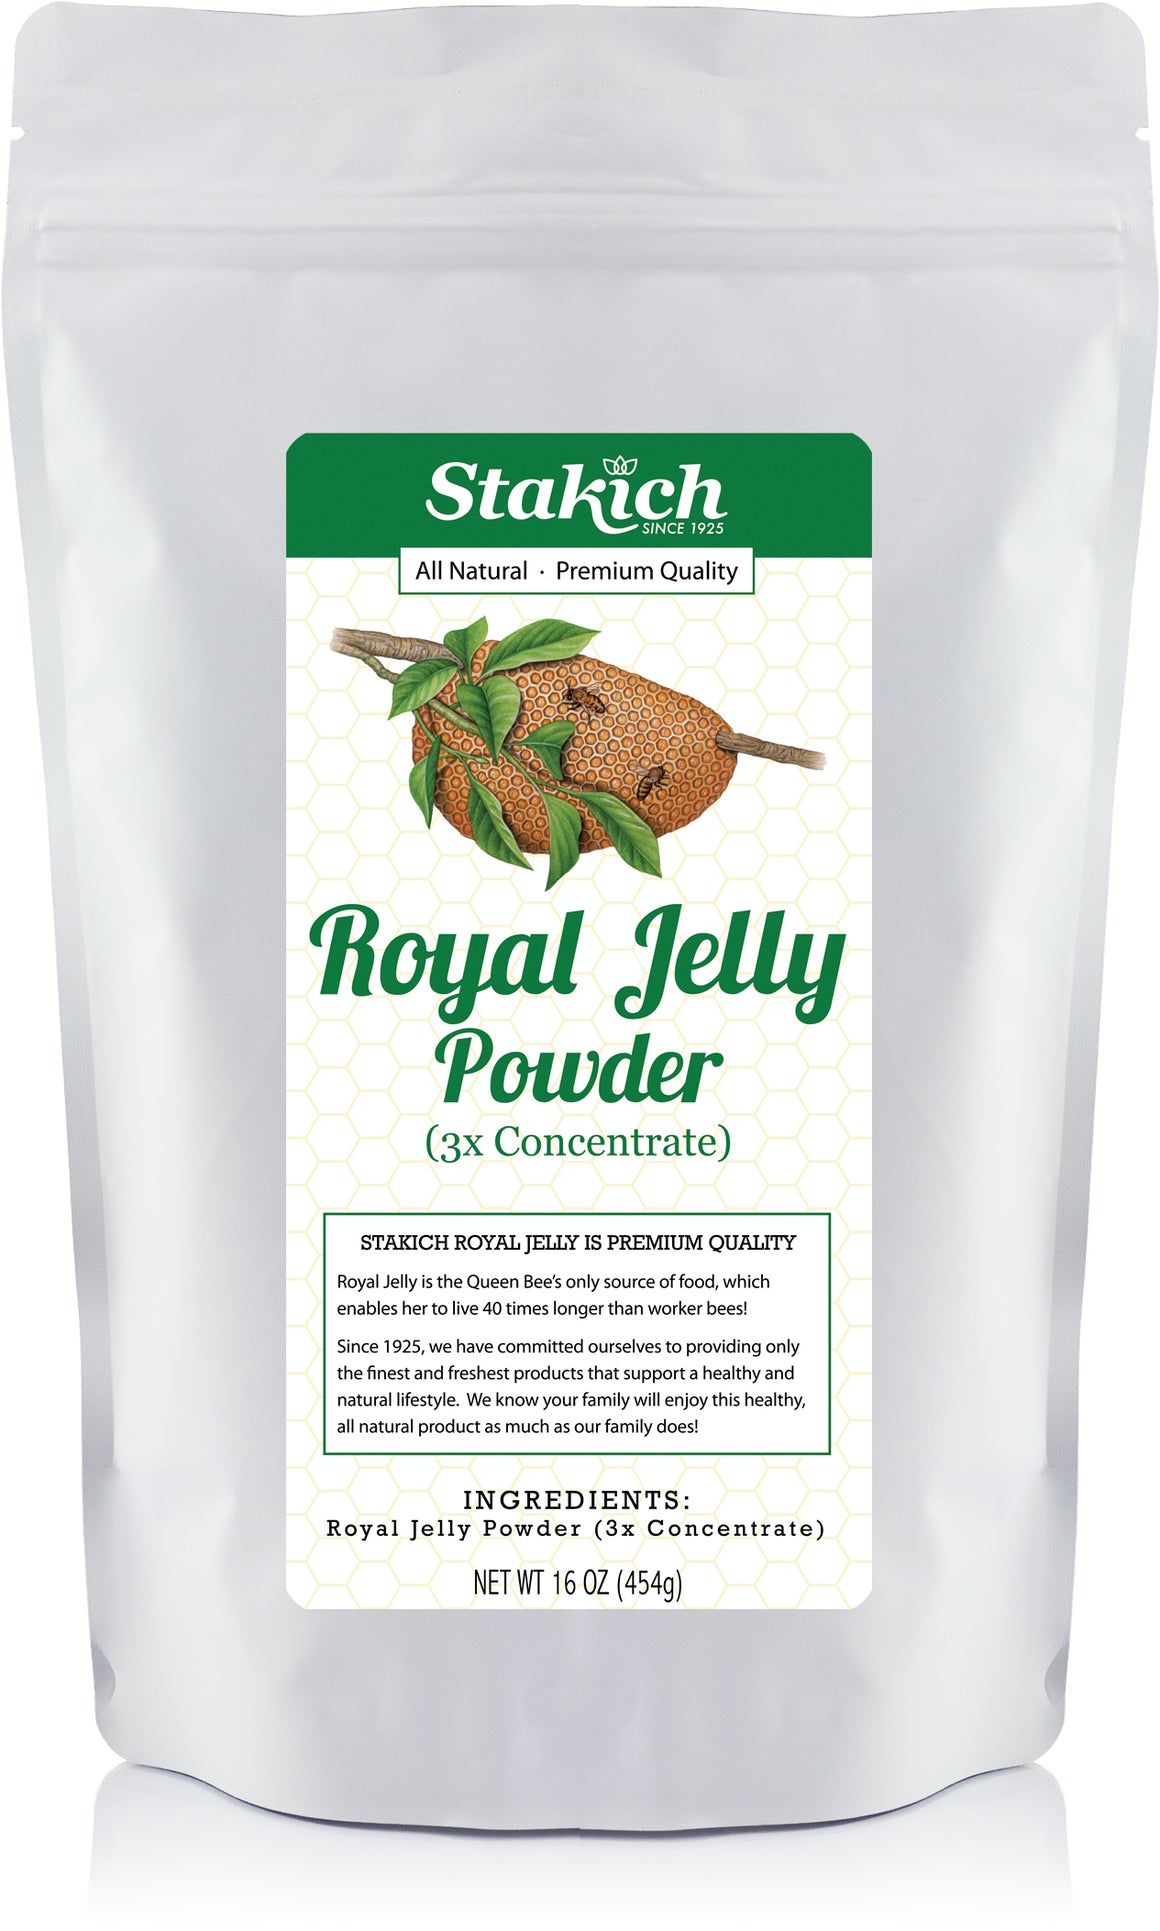 Case of Royal Jelly Powder (1 lb) - Stakich